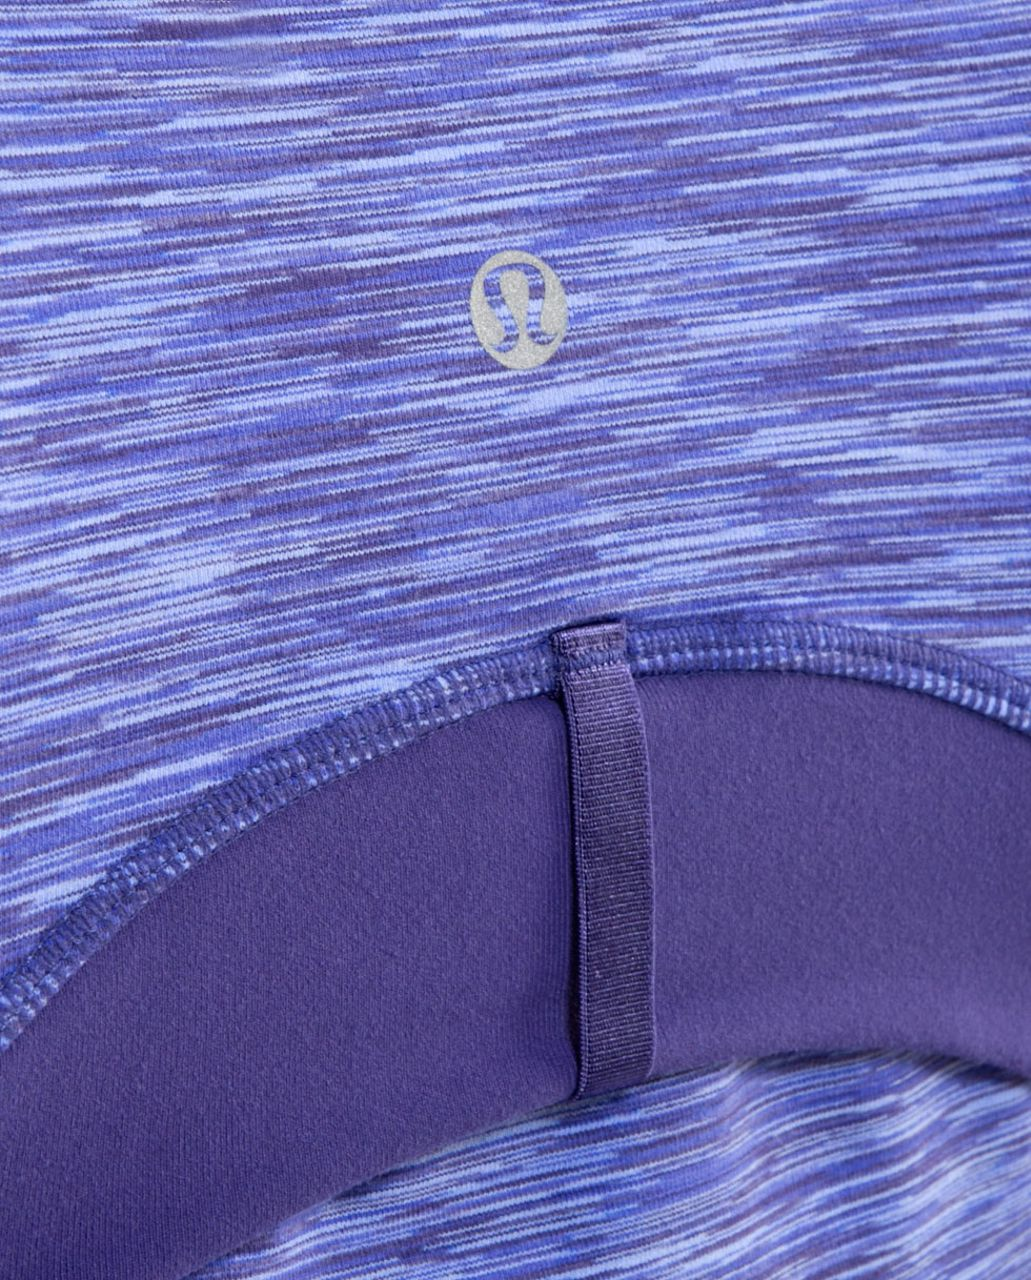 Lululemon Define Jacket - Royalty Space Dye /  Royalty